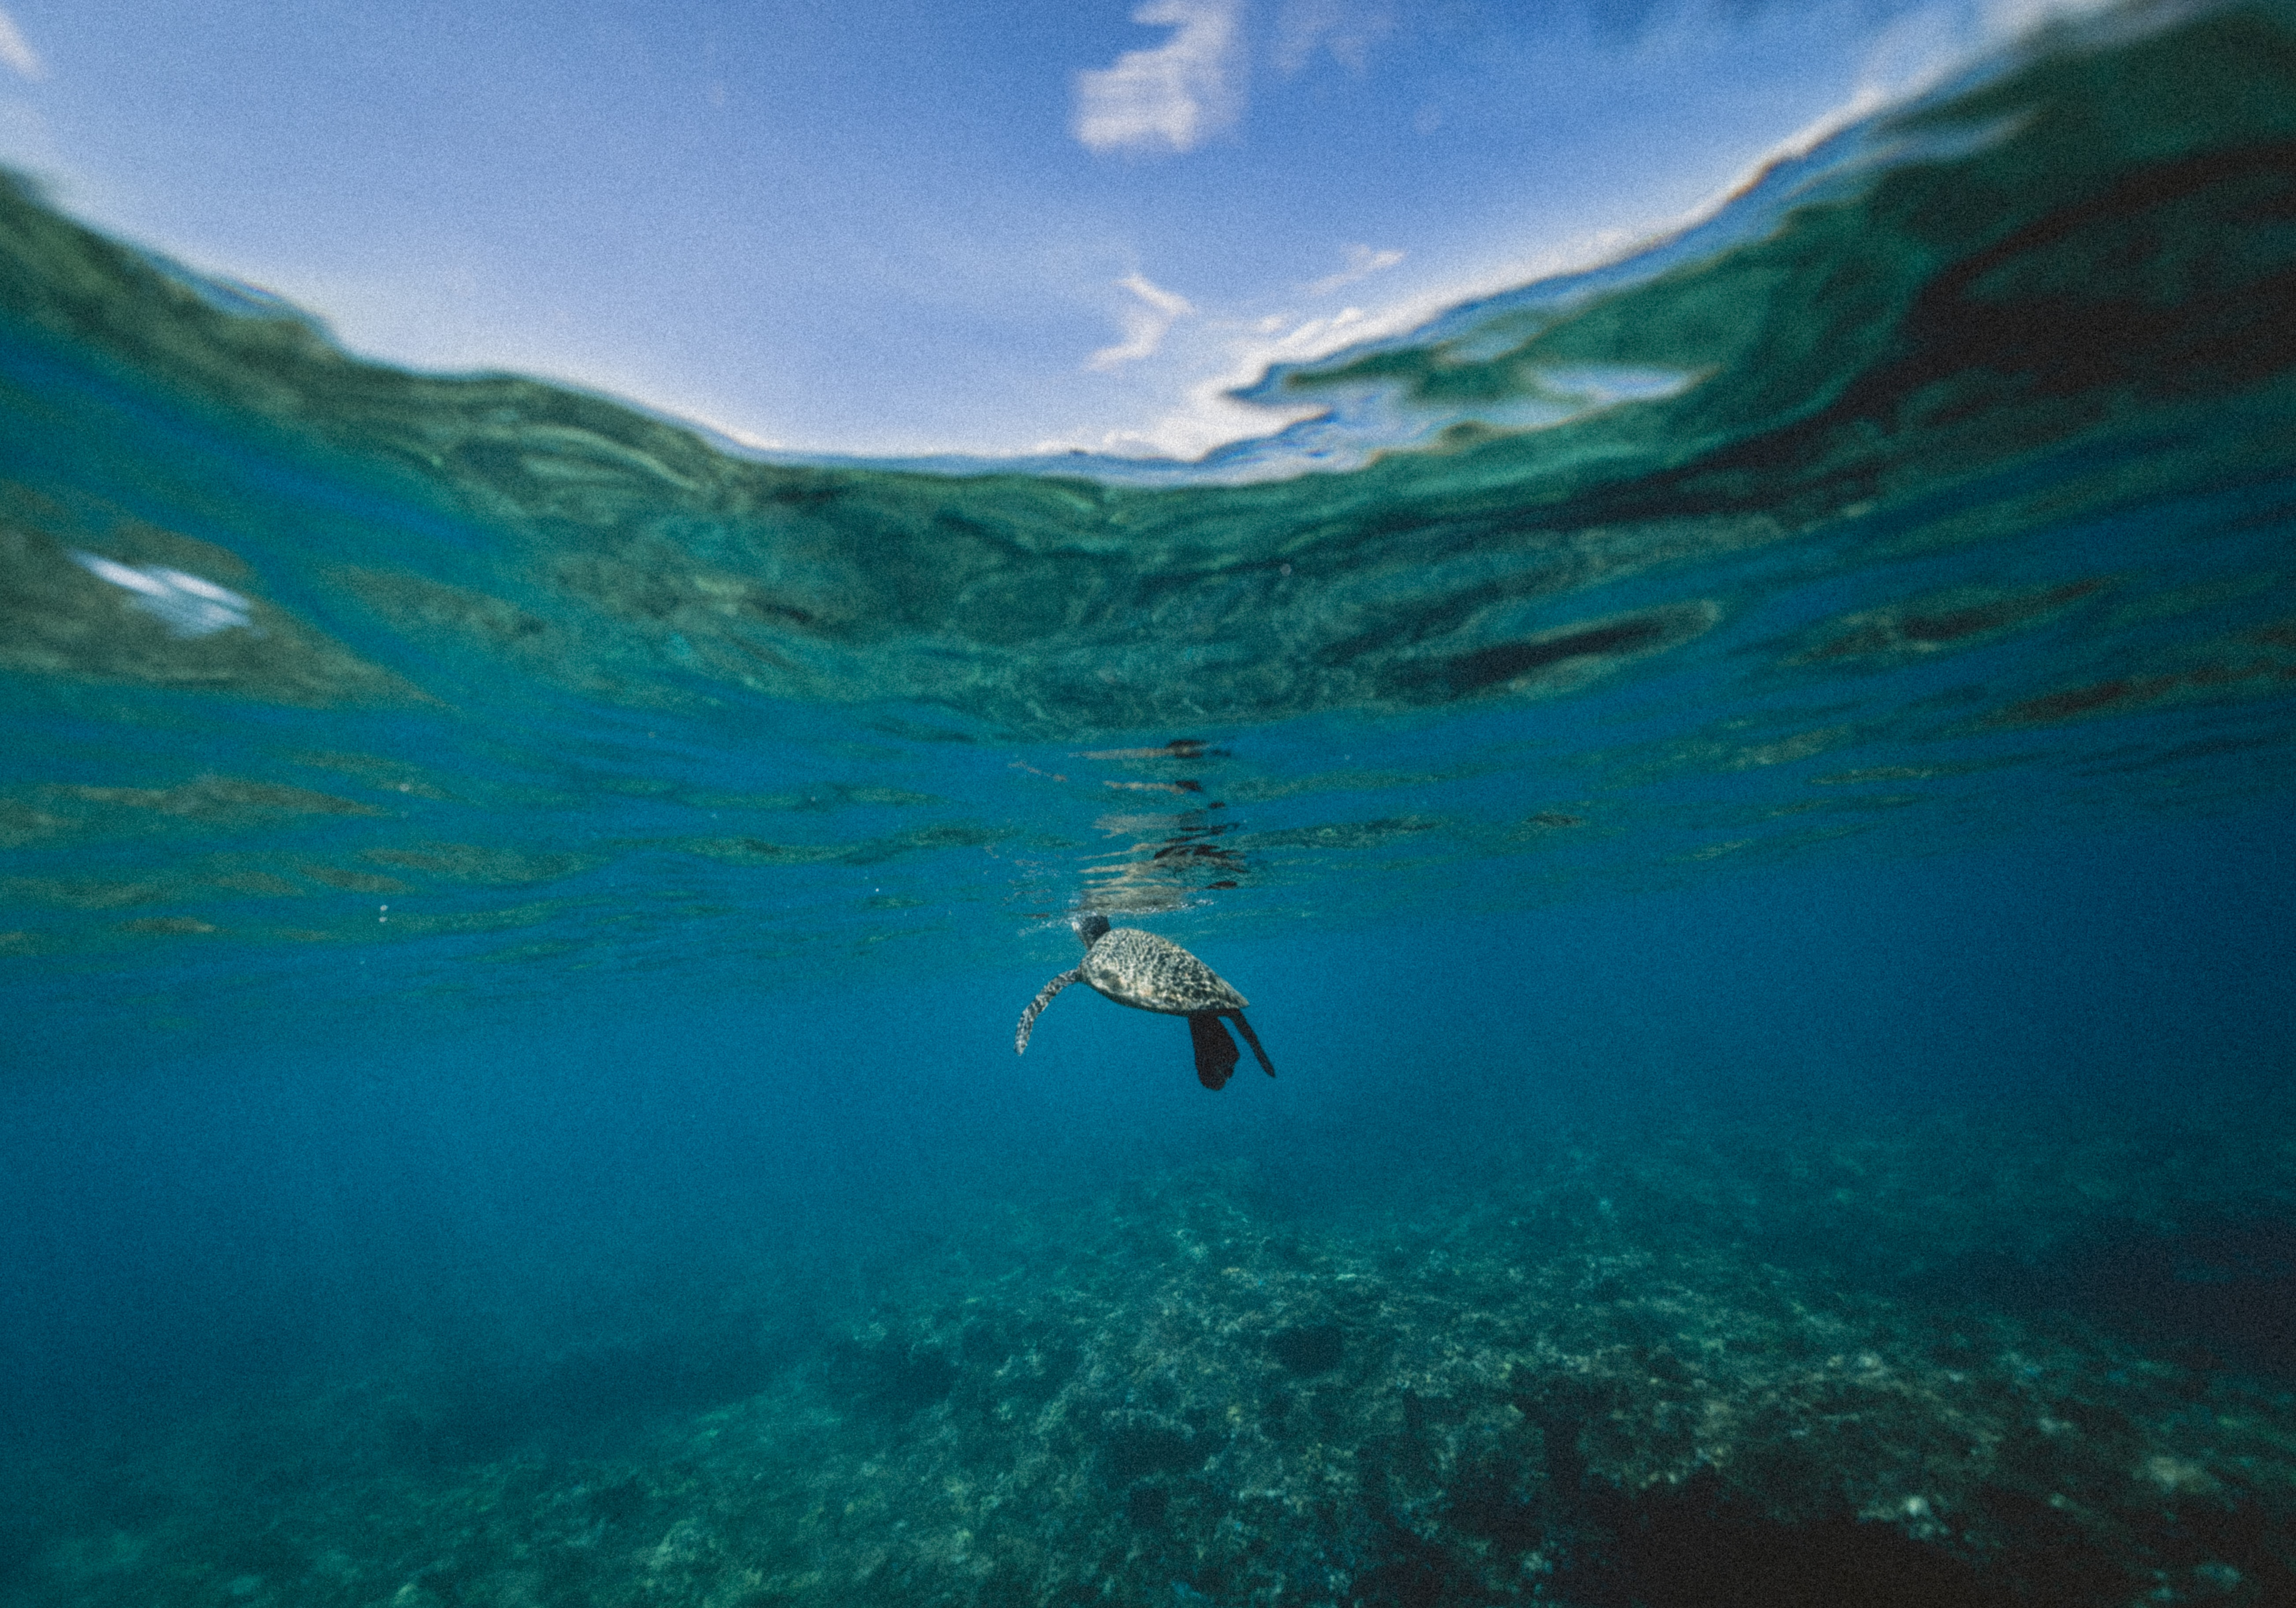 The view of a sea turtle poking its head above the ocean from underwater